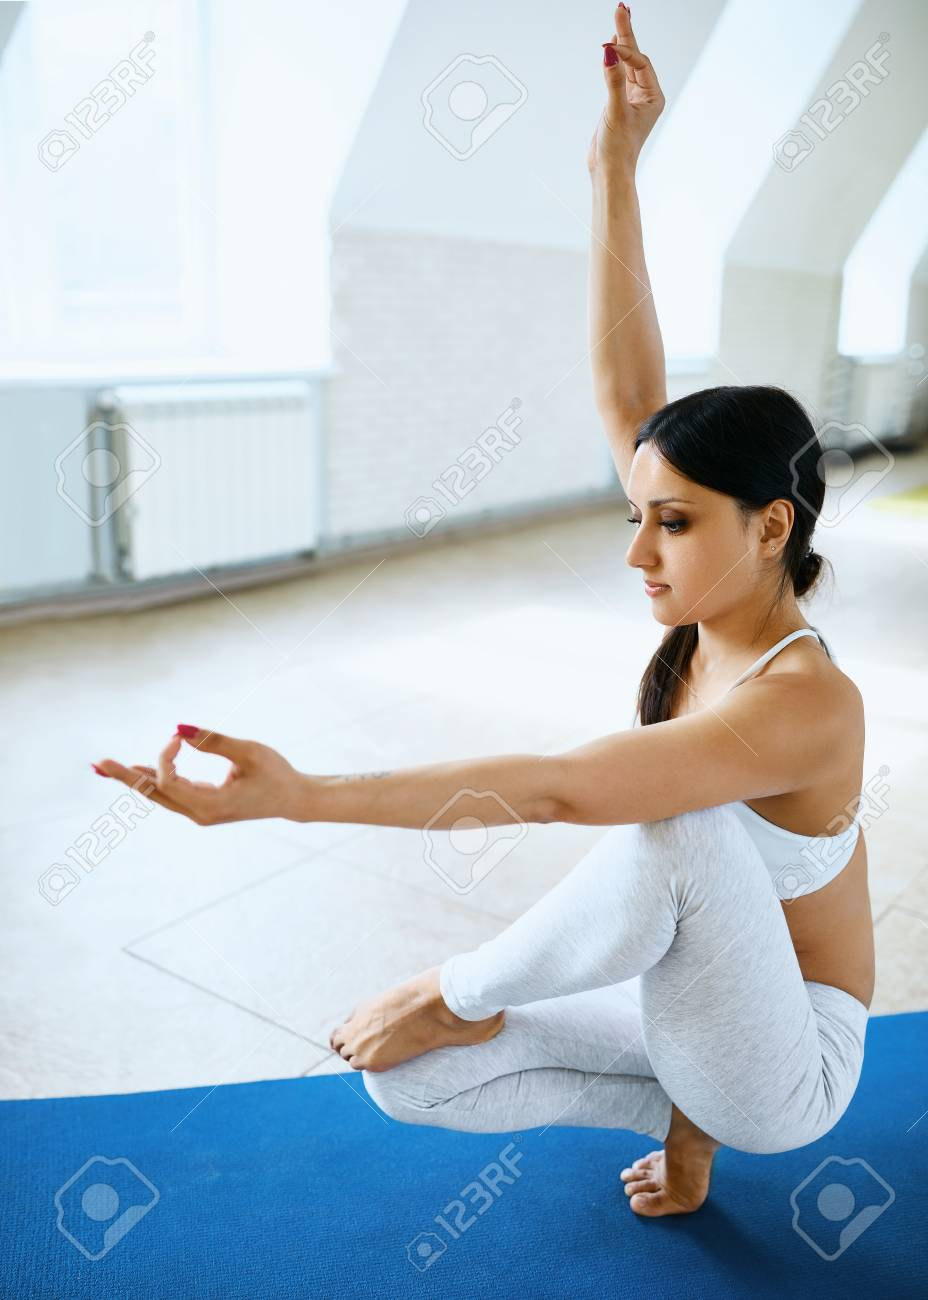 Sporty Attractive Woman In White Sportswear Doing Beautiful Yoga Stock Photo Picture And Royalty Free Image Image 121186250